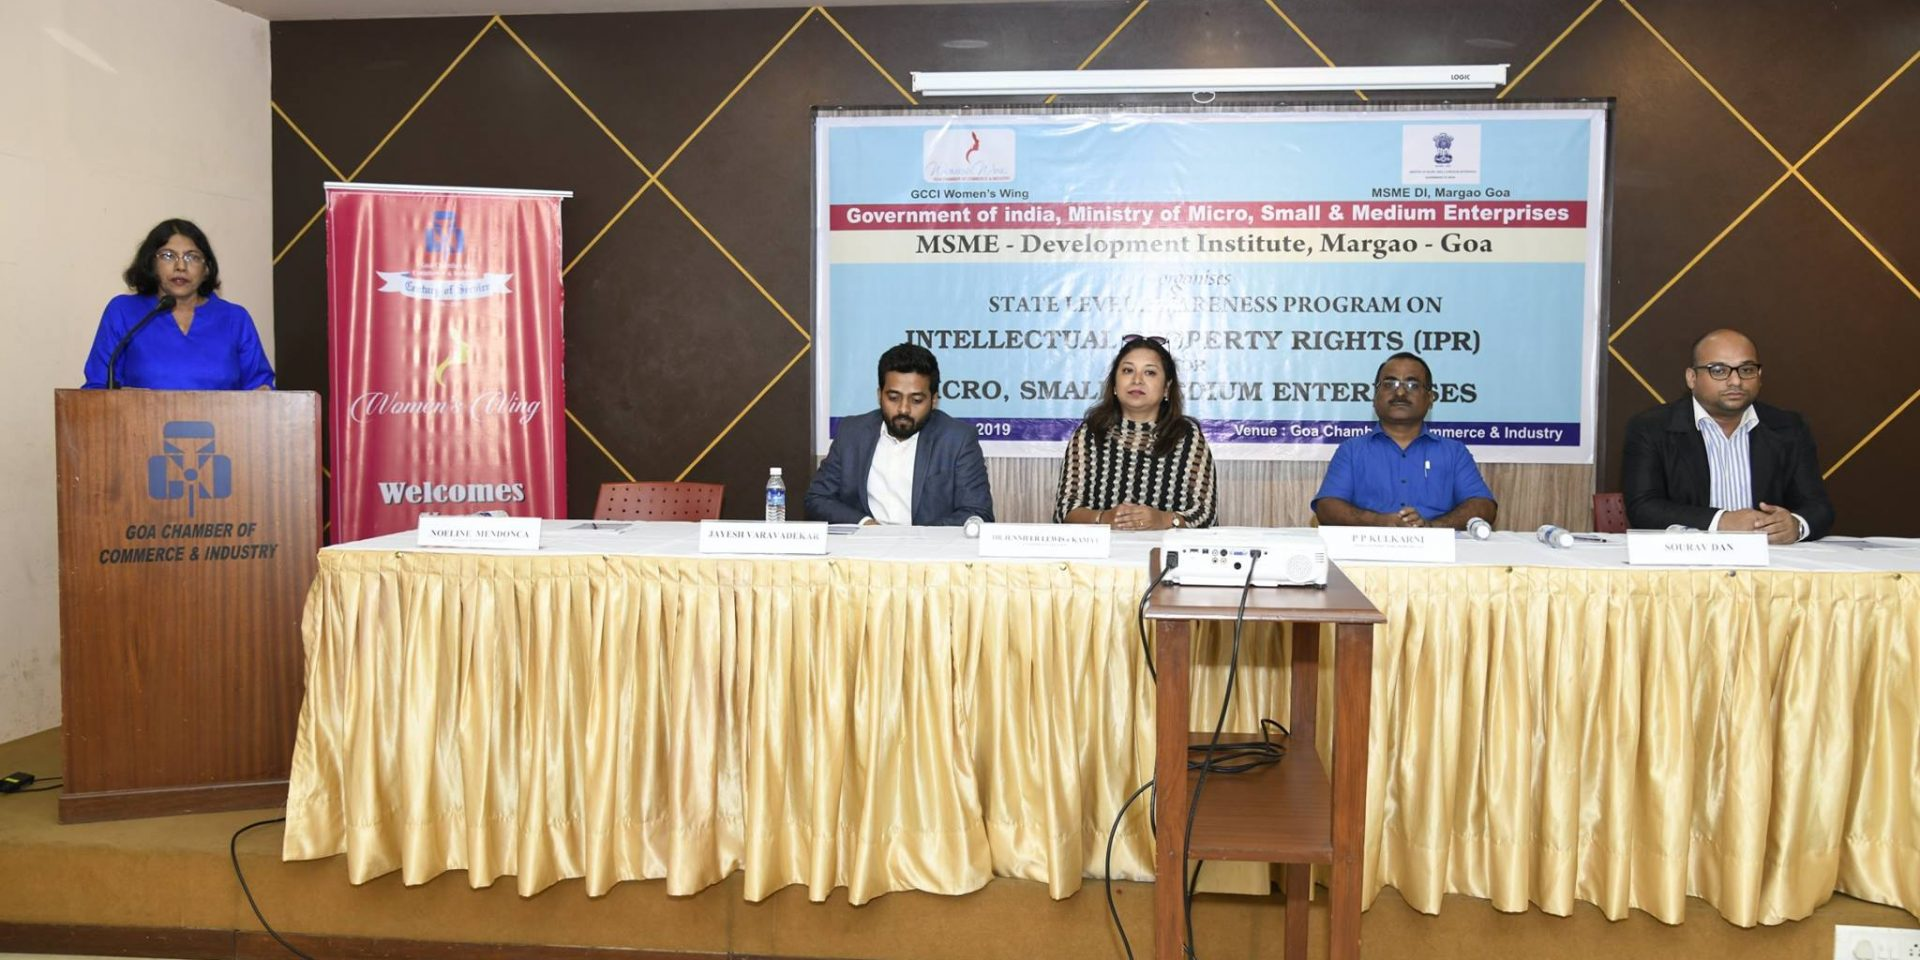 MSME organises state level awareness program on INTELLECTUAL PROPERTY RIGHTS (IPR)